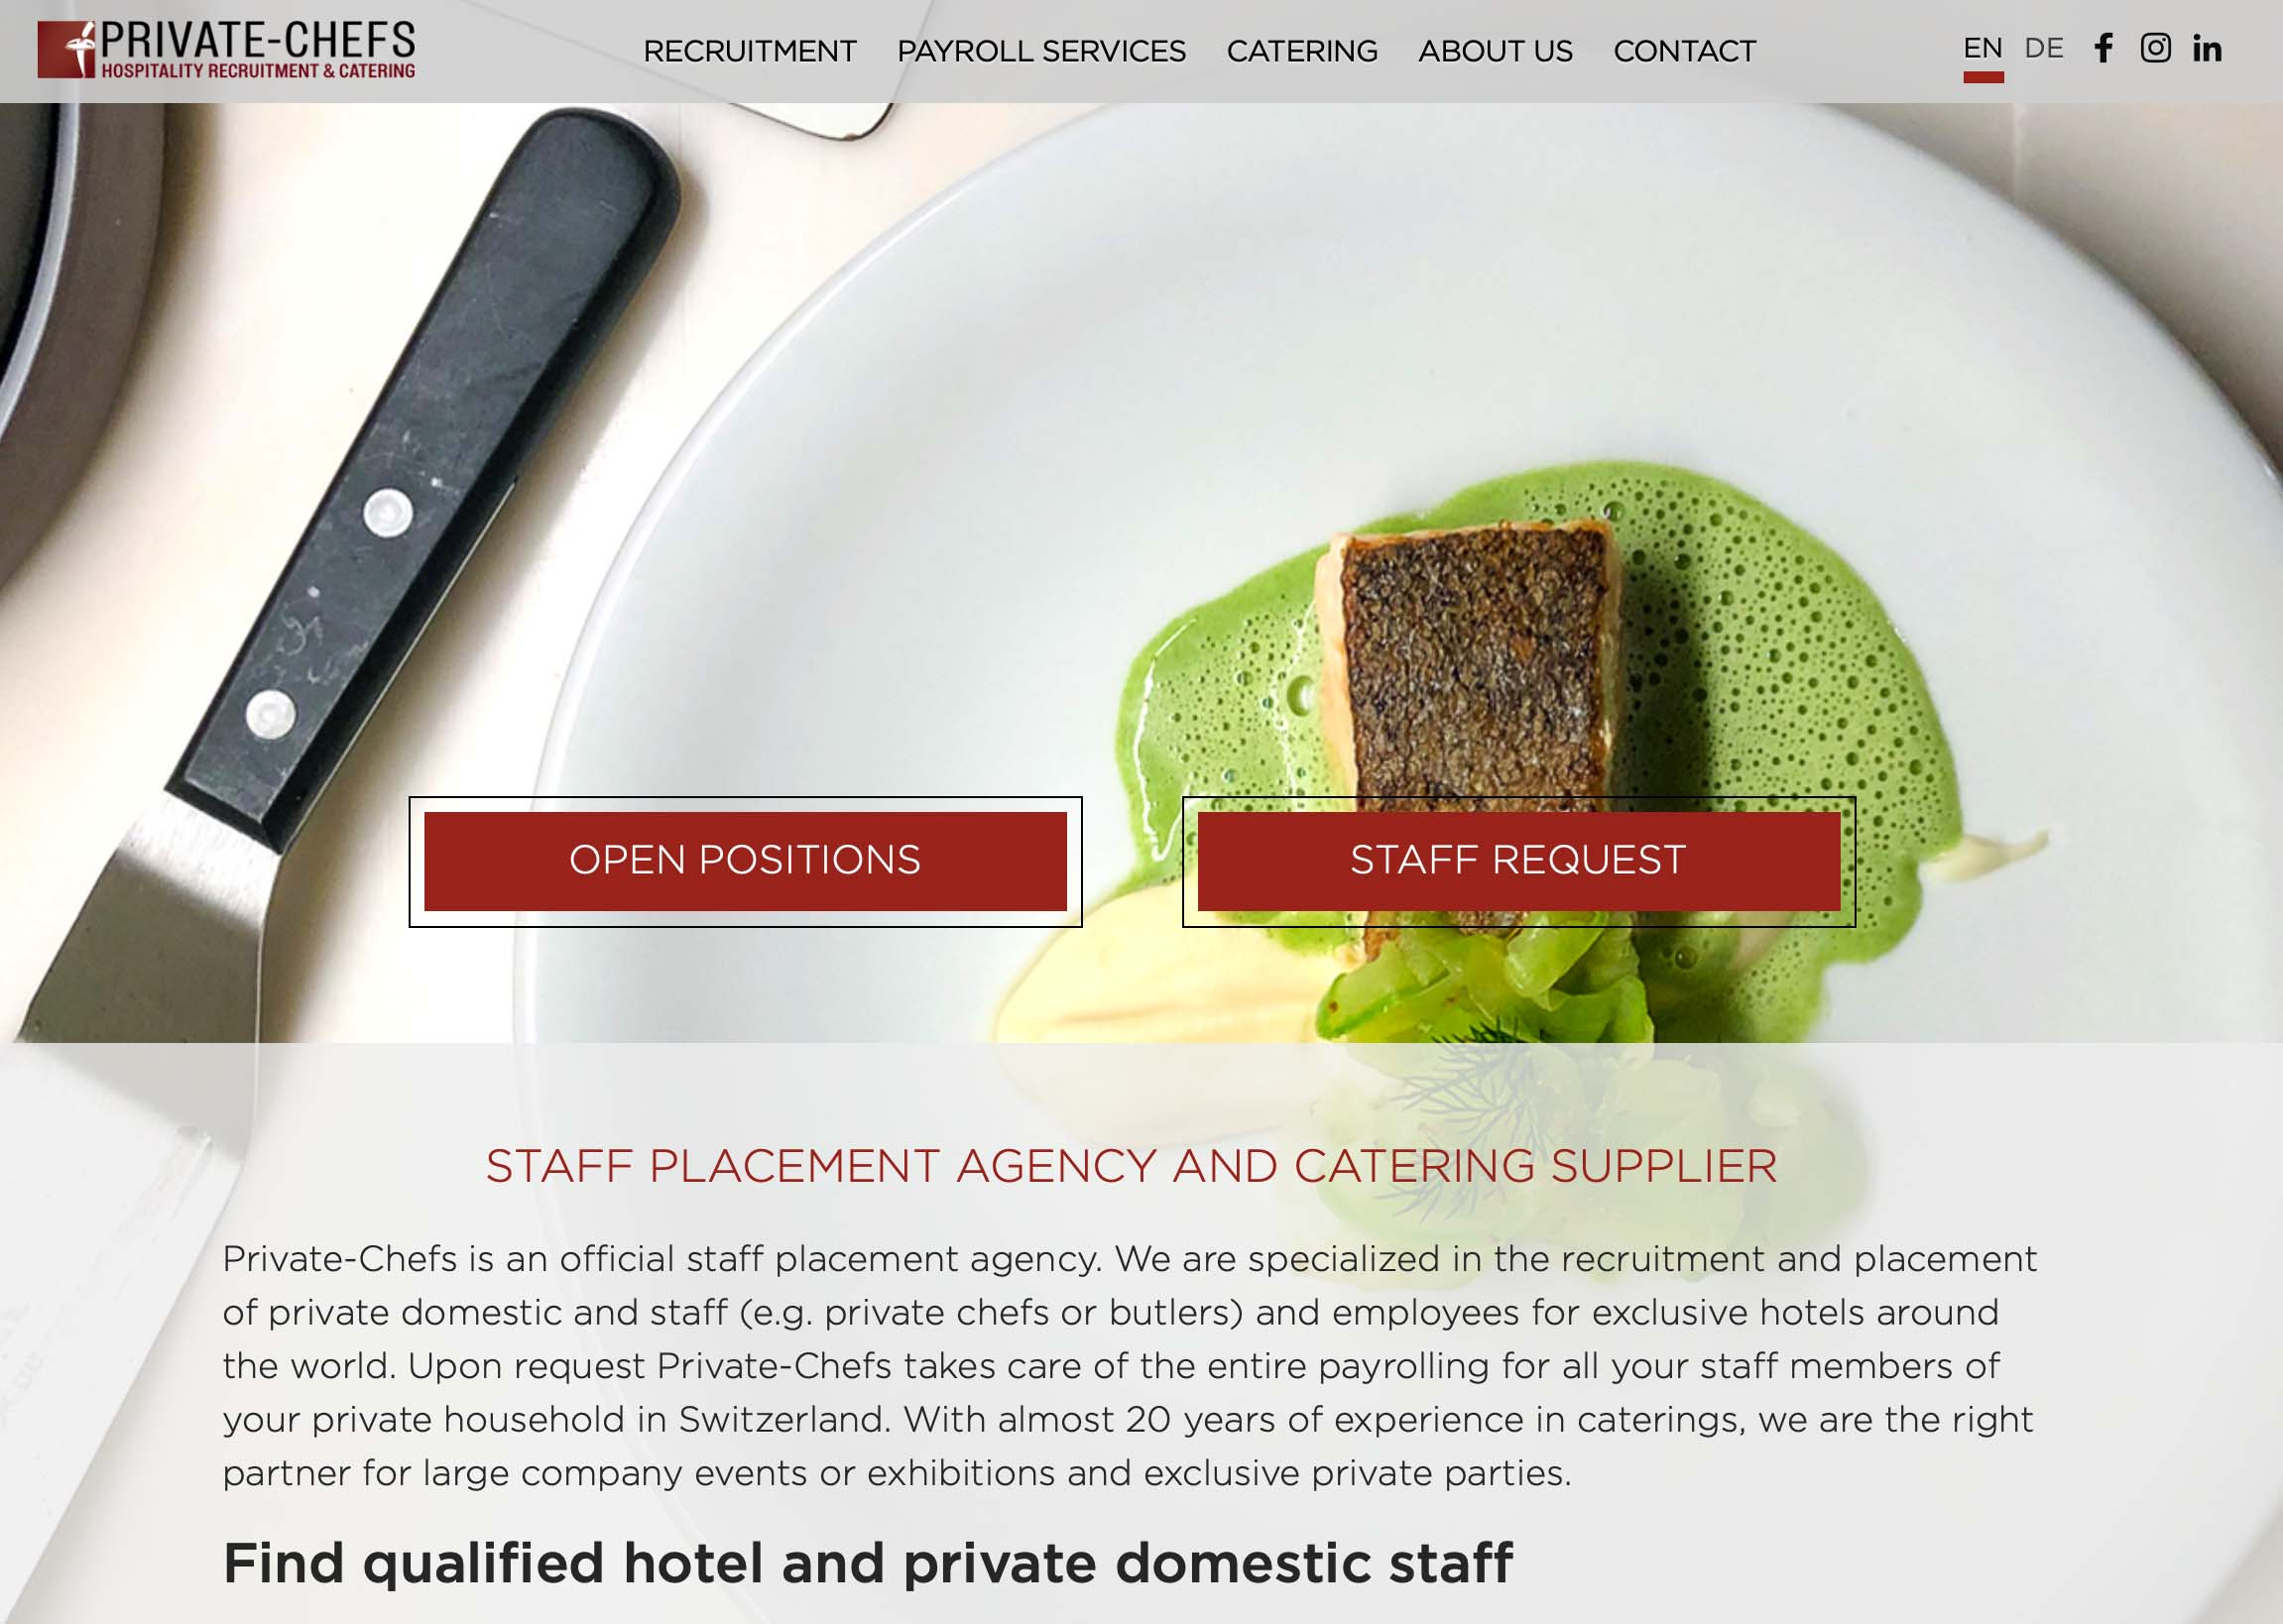 A new optimised website, for a better service